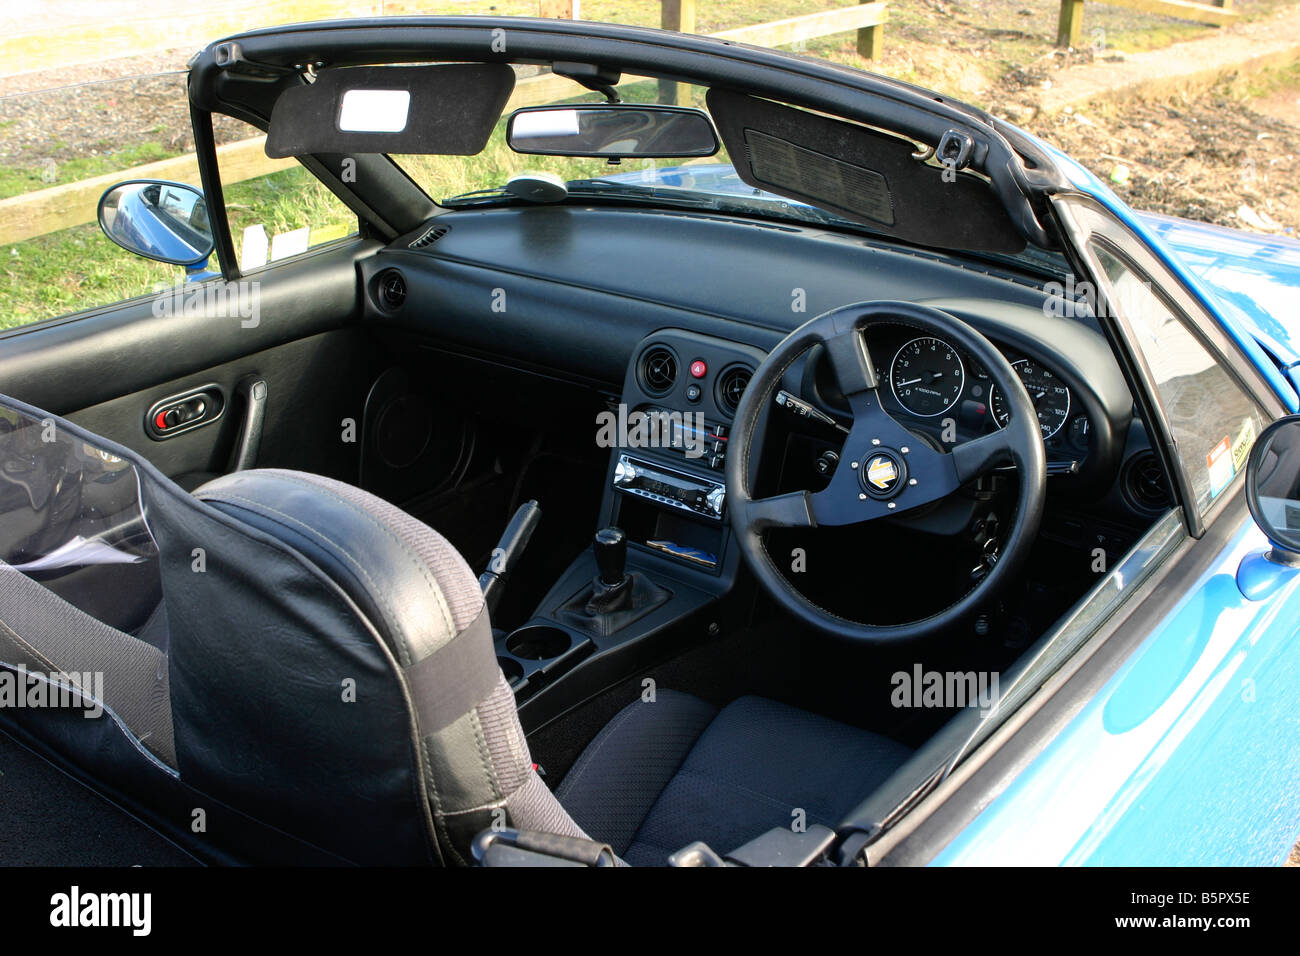 mazda mx5 mk1 2 seater sports car close up of black interior trim stock photo 20787130 alamy. Black Bedroom Furniture Sets. Home Design Ideas